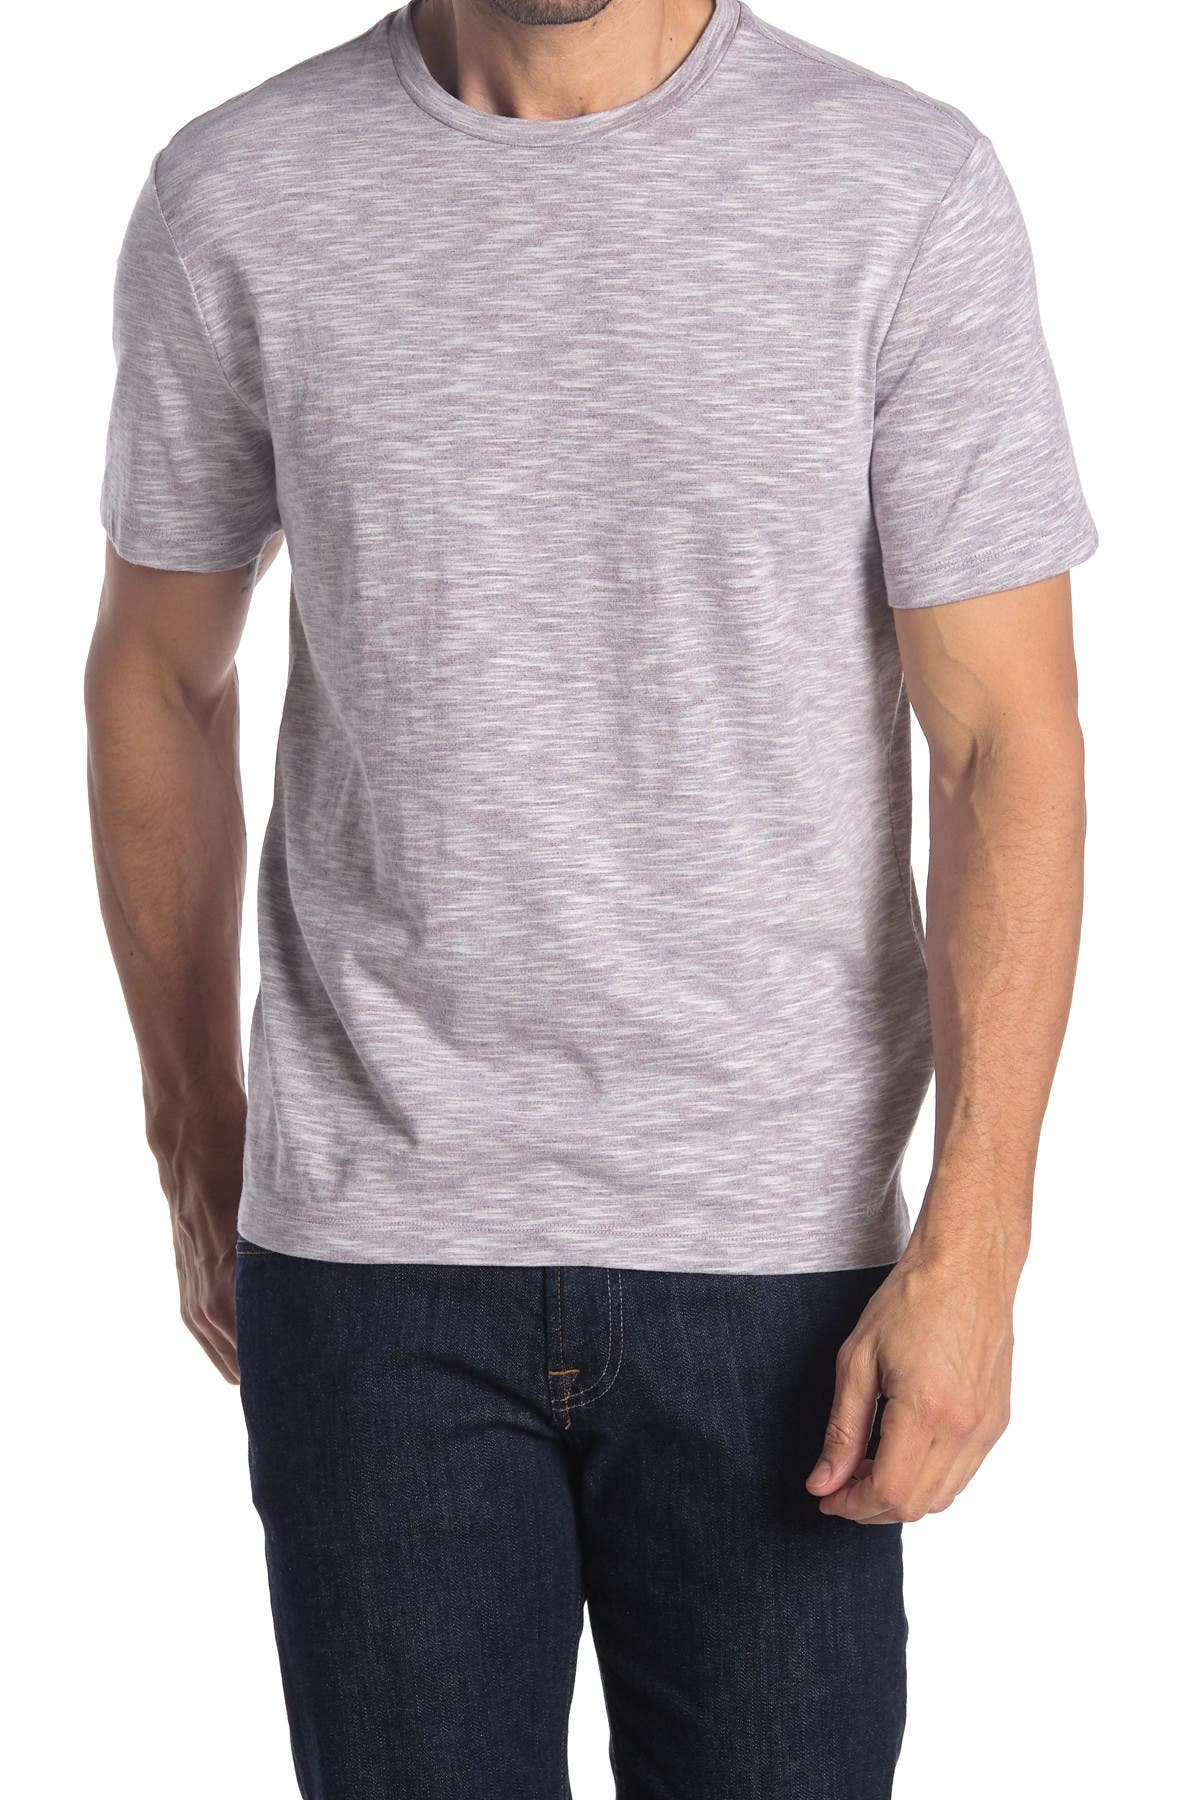 Image of Michael Kors Space Dyed T-Shirt